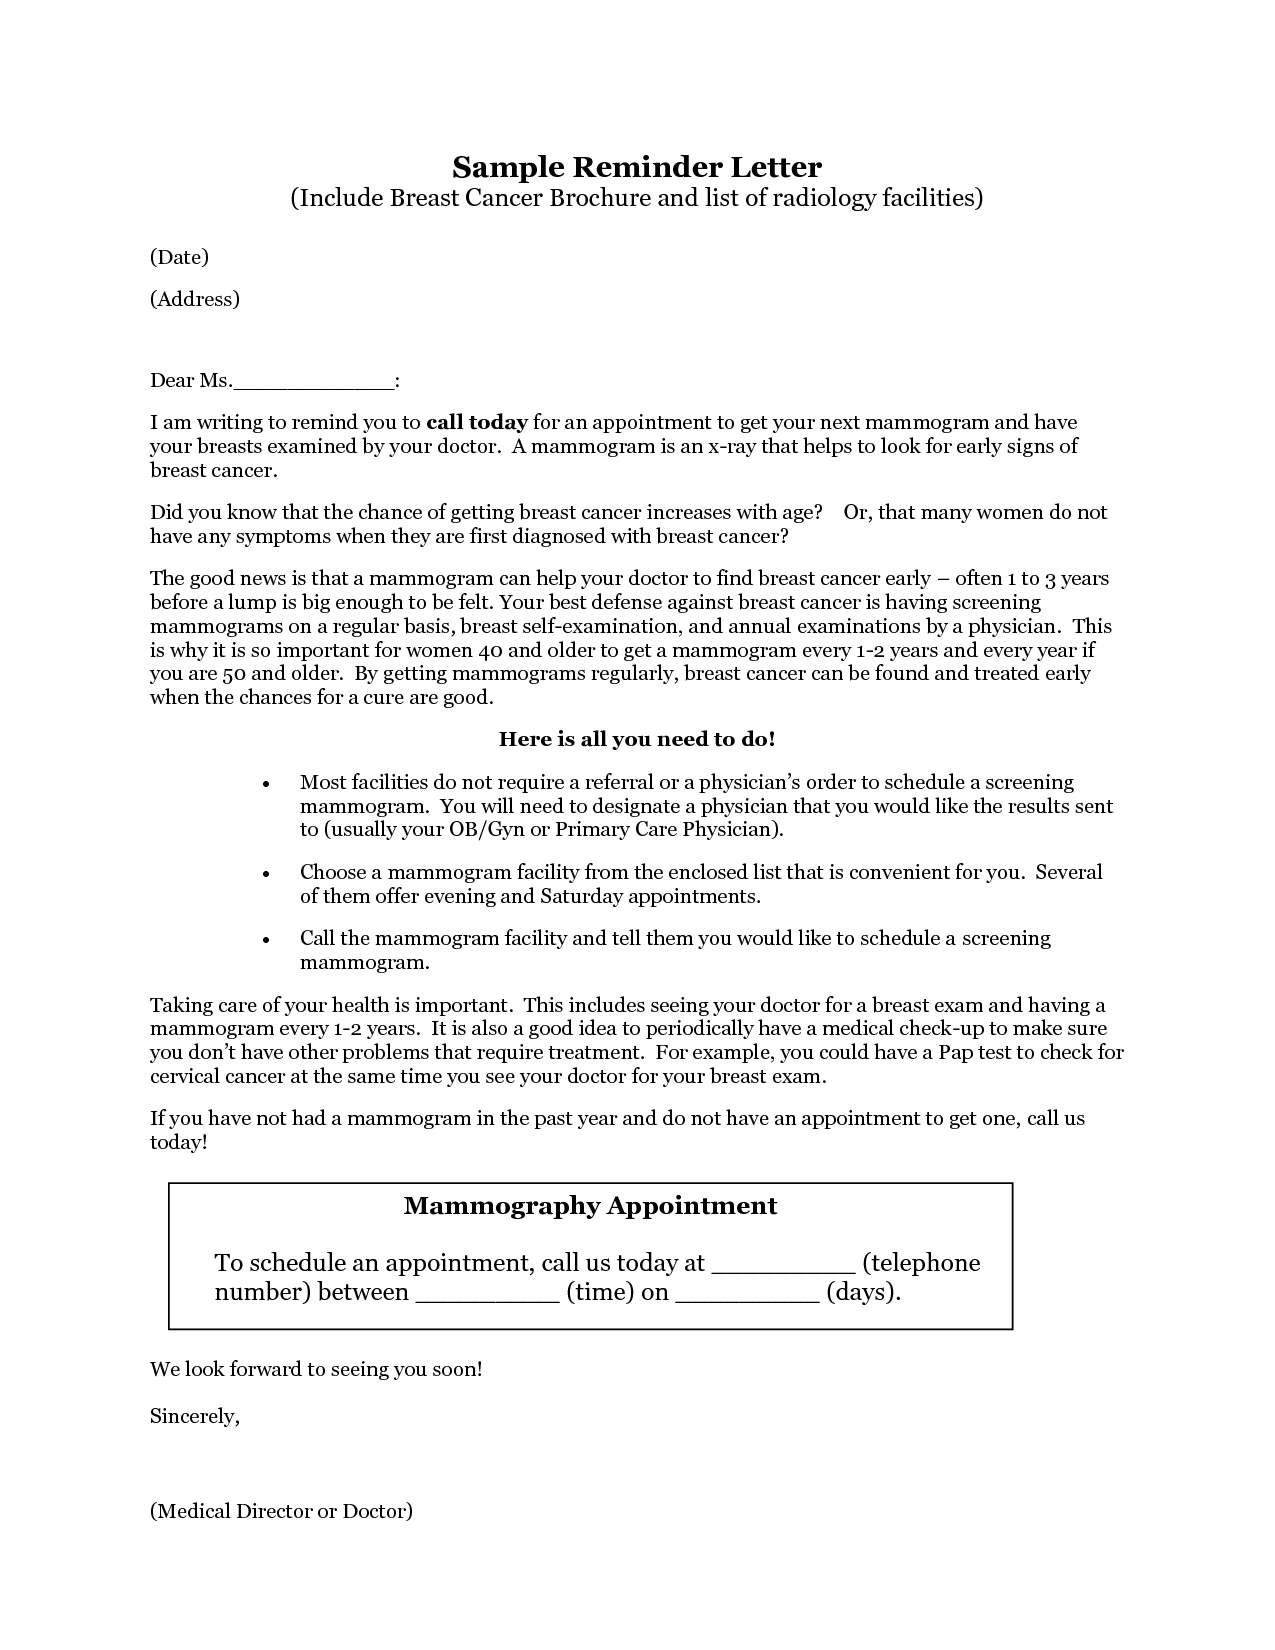 Appointment Reminder Letter Template Medical - How to Write Reminder Letter Gallery Letter format formal Sample